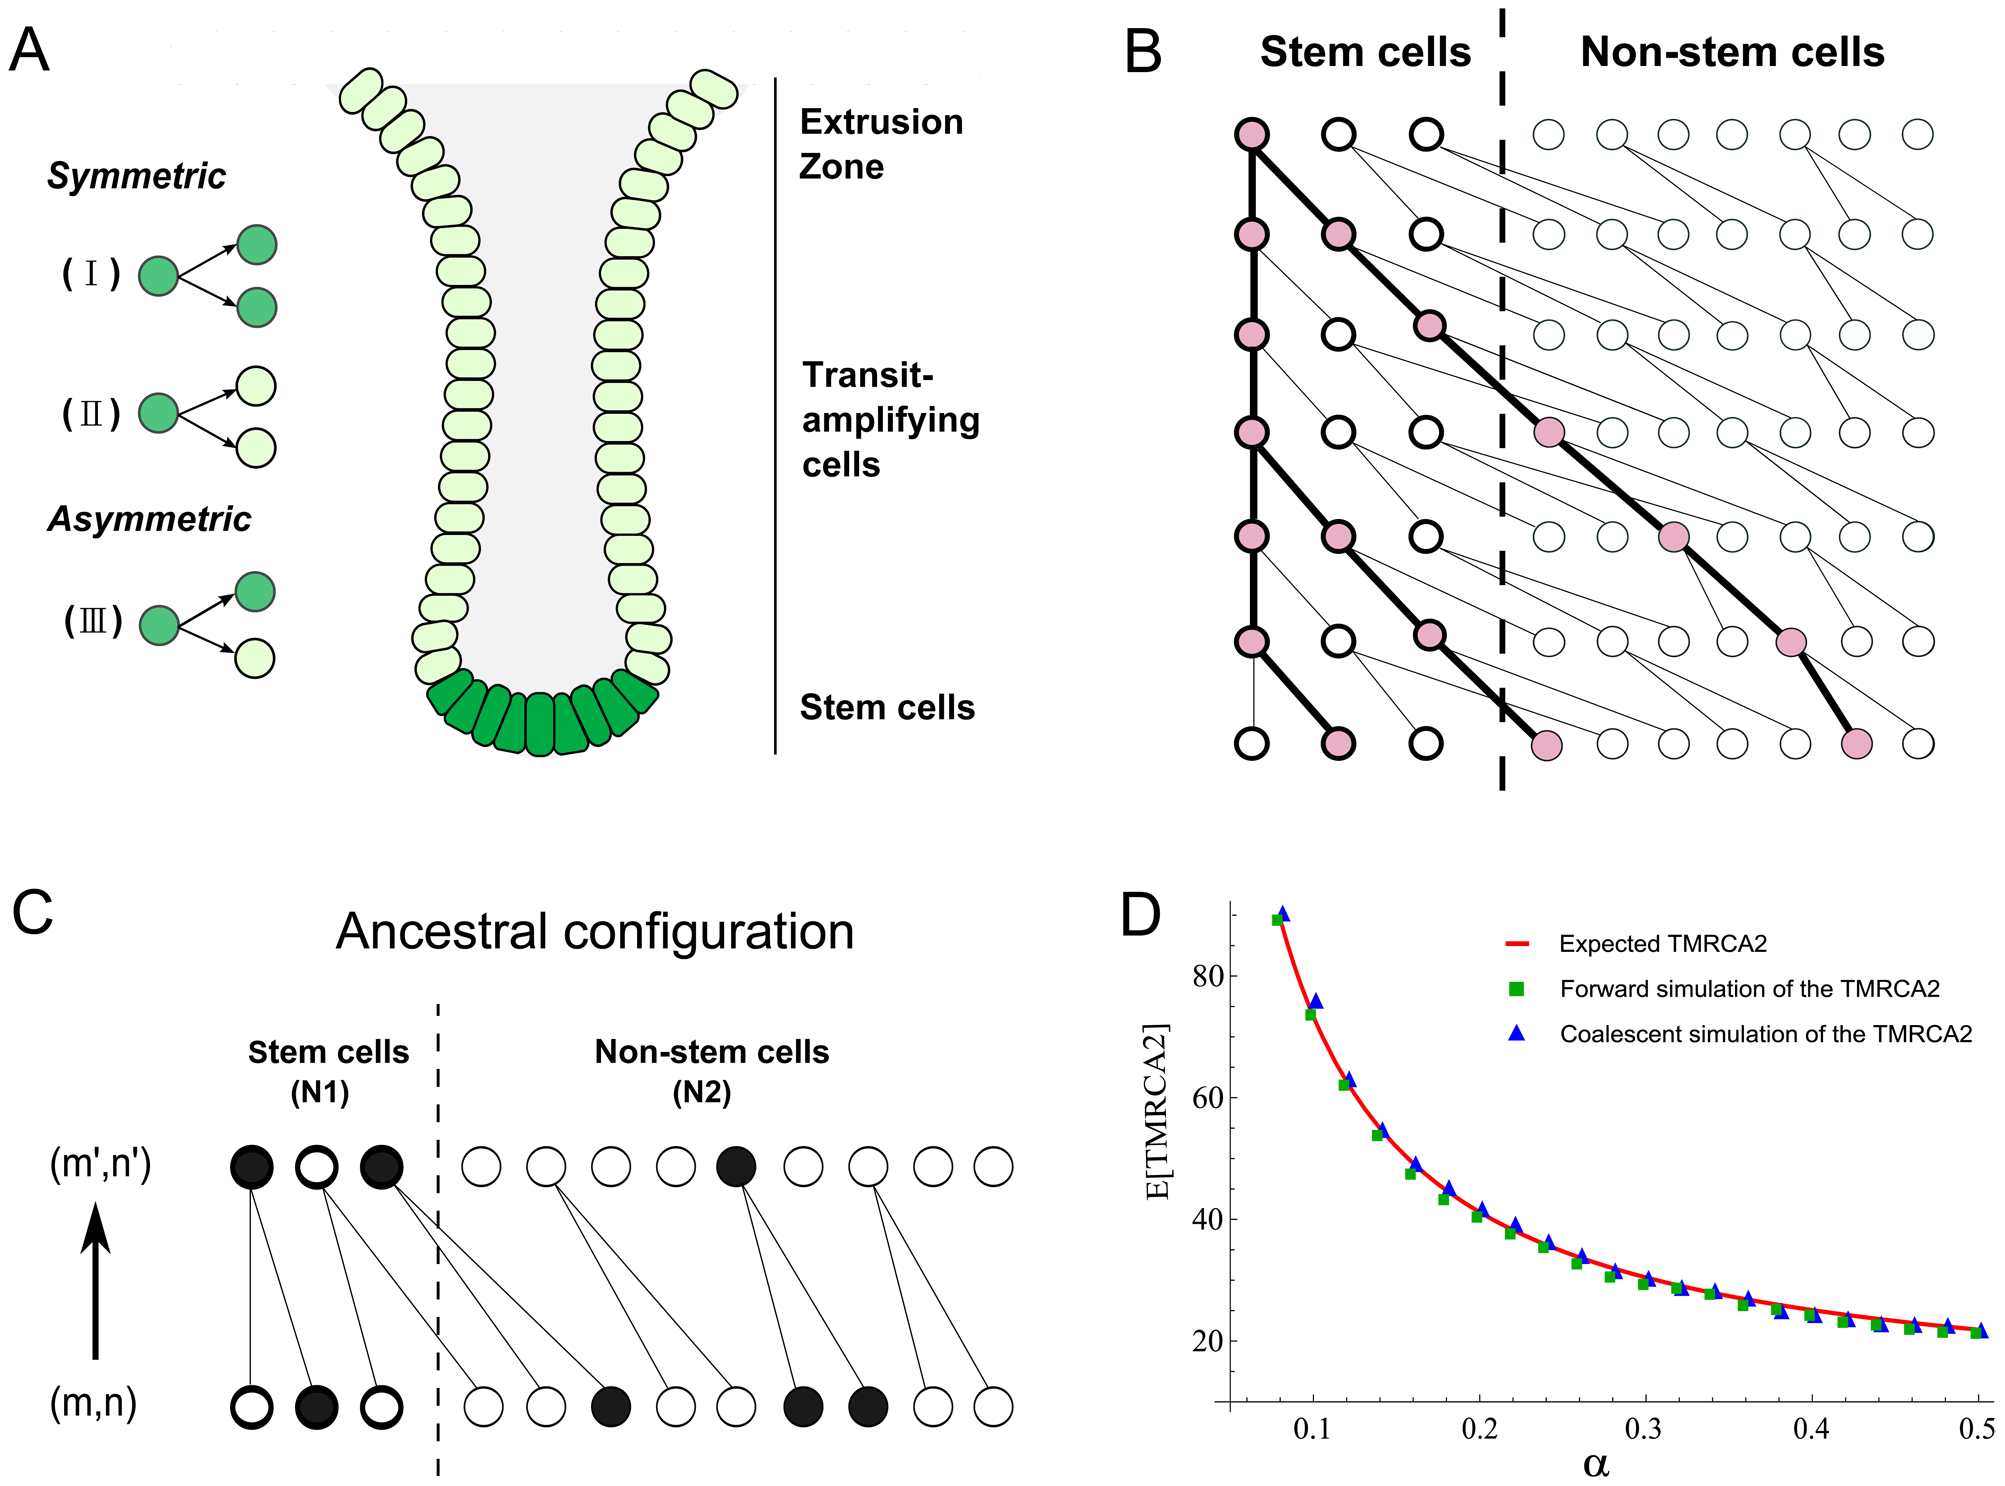 Anatomy of intestinal crypts and coalescent processes for the two-deme model.